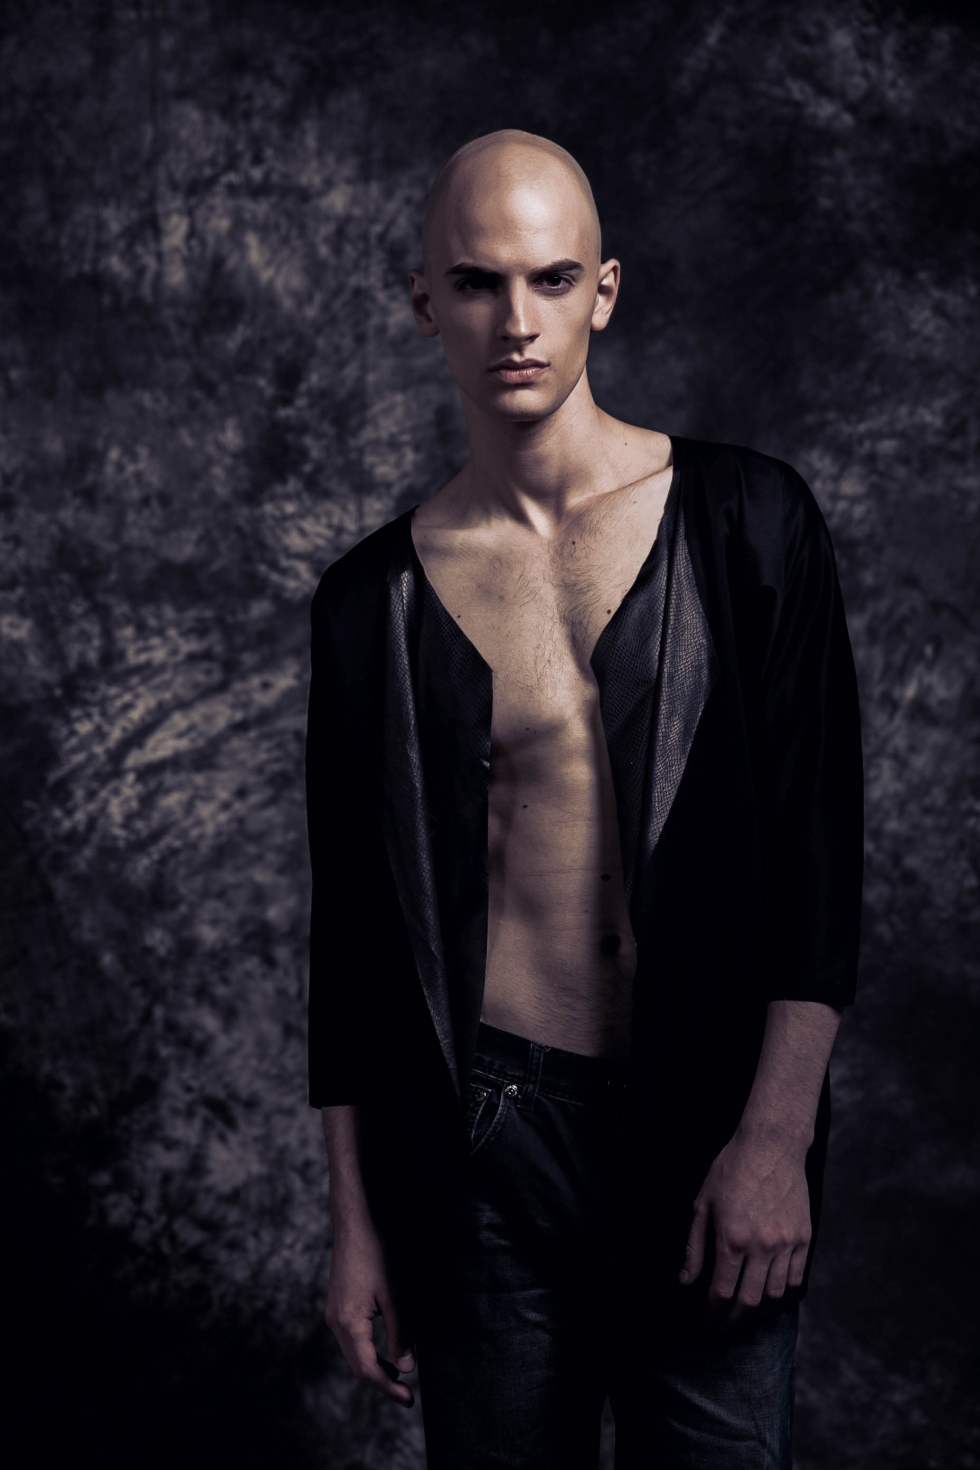 Introducing new face Nathanael Baldwin from Ciotti Models in Toronto photographed by Juan Neira. Charming and enigmatic look that you can not take your eyes off of him.